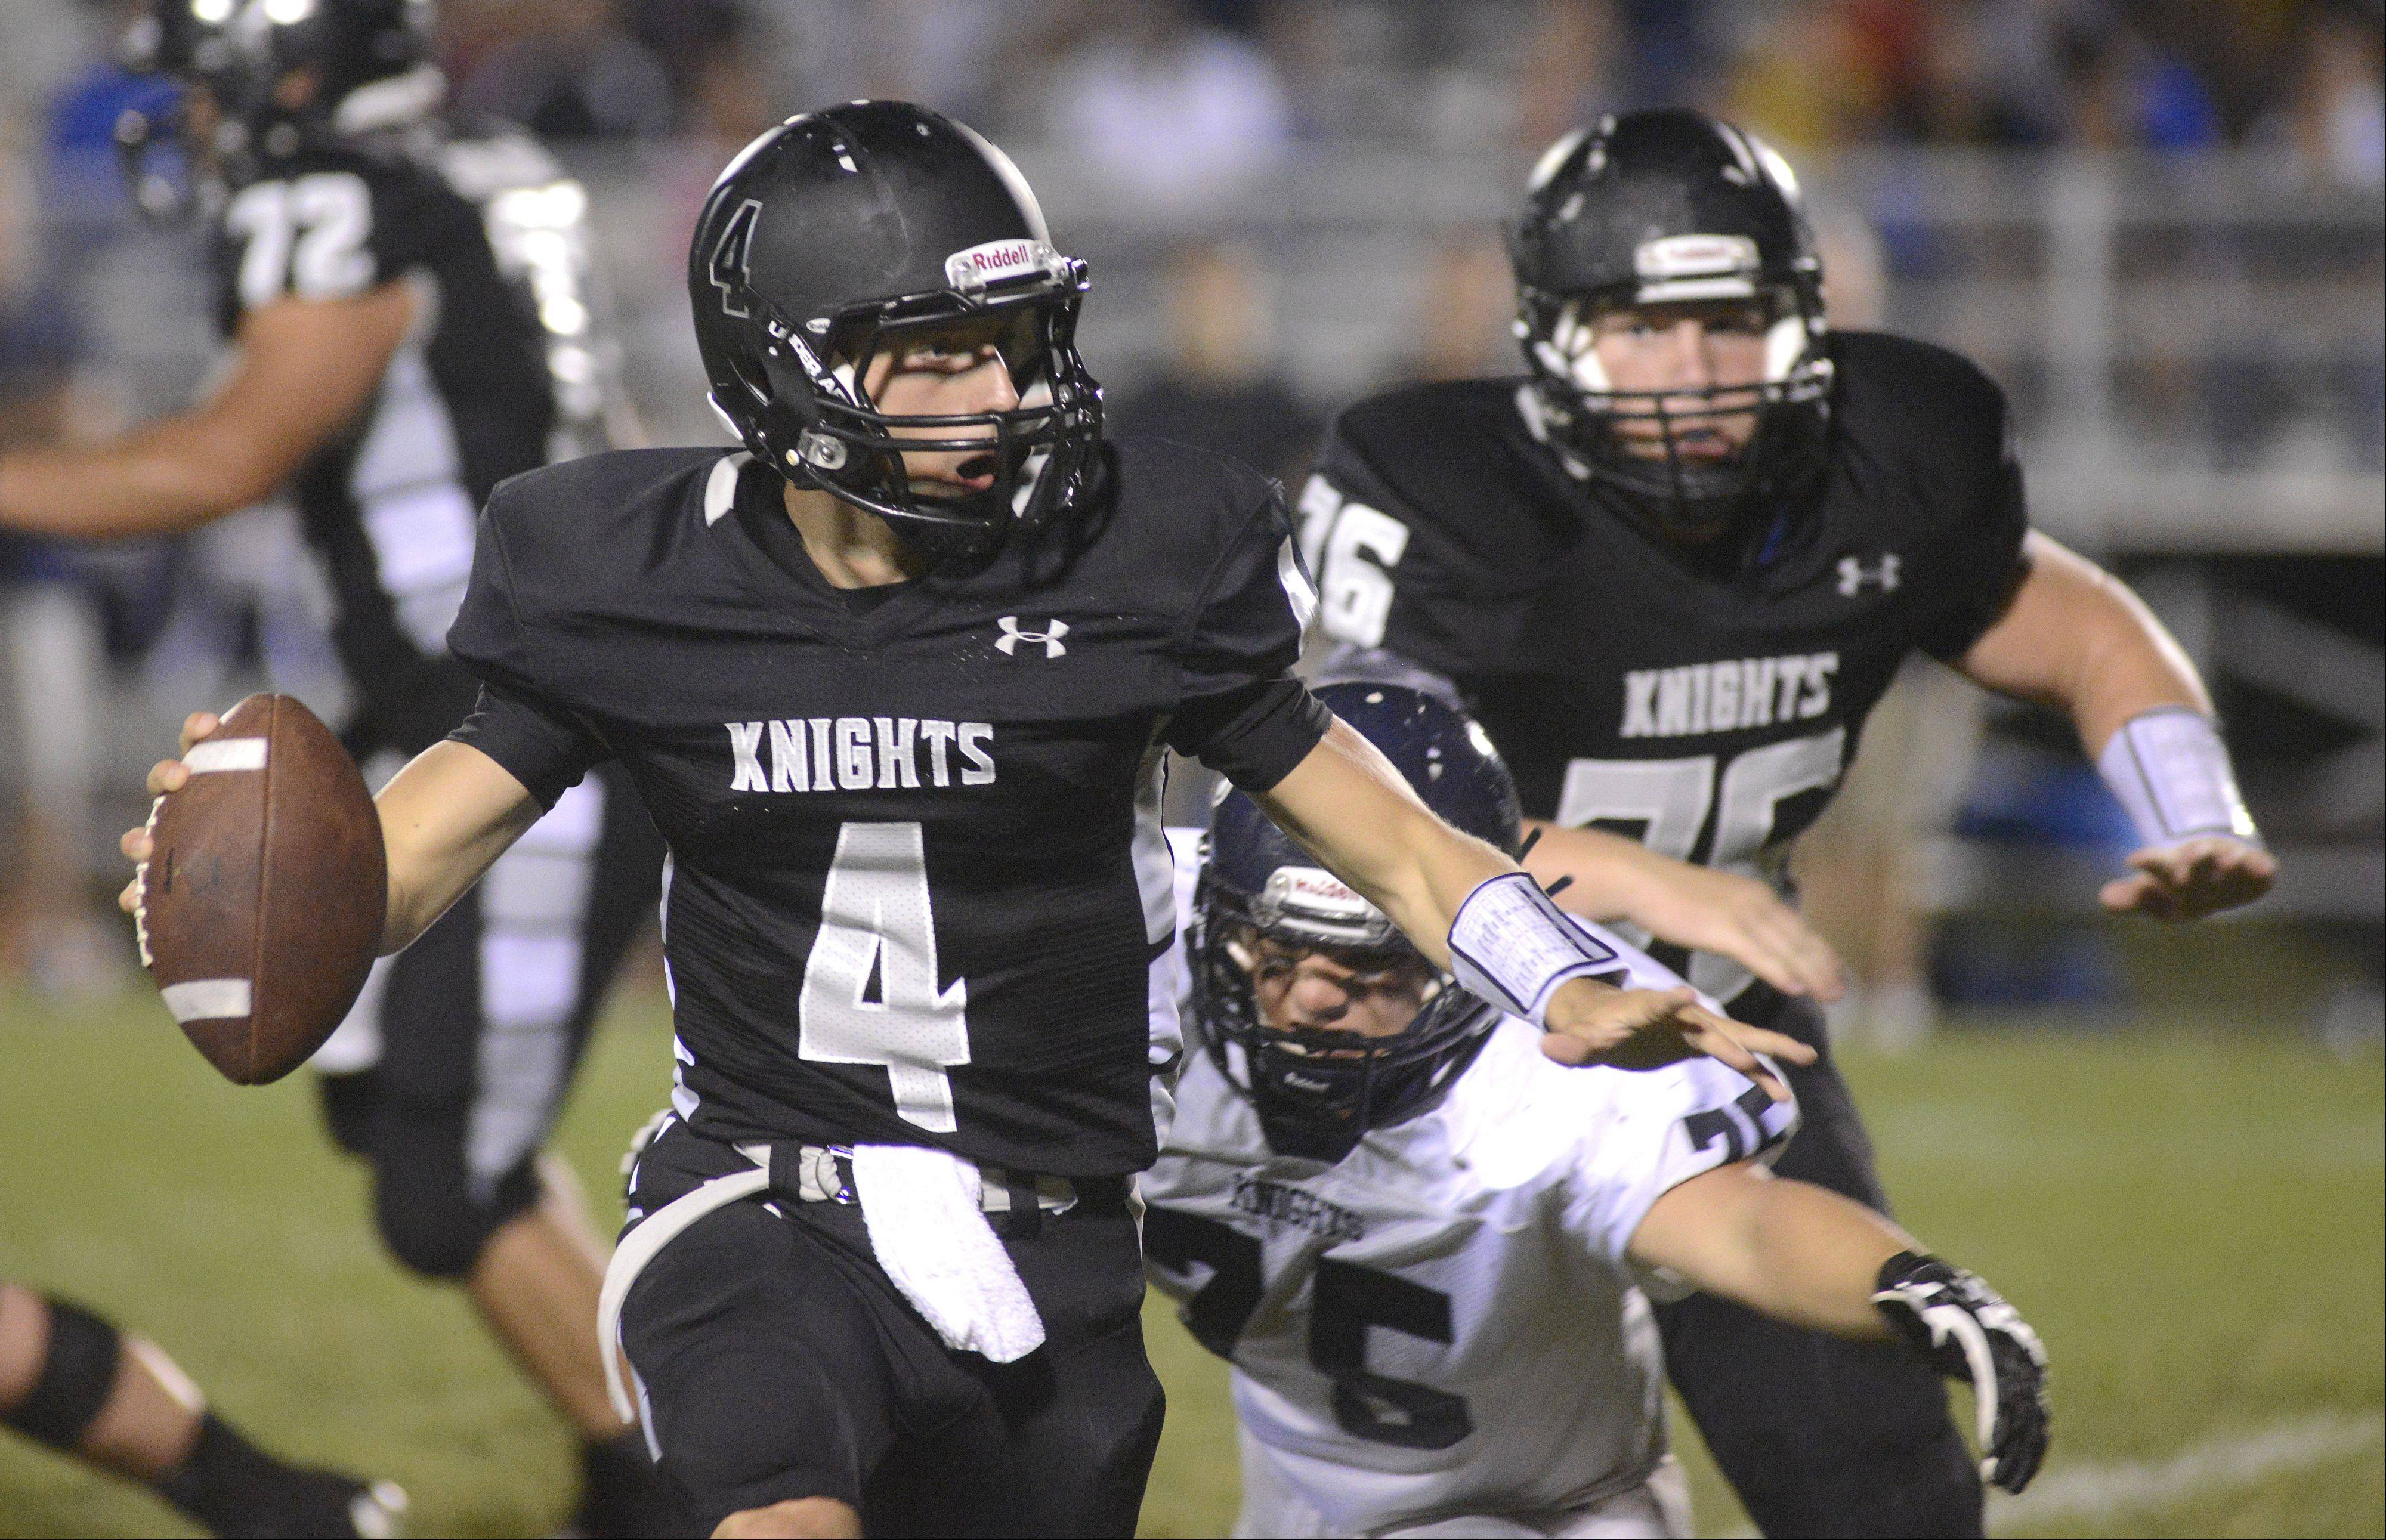 Along with Aurora Christian and Marmion, Kaneland � with quarterback Drew David fresh off a career-high 6 touchdowns in last Friday's win � takes a 4-0 record into its Week 5 game.